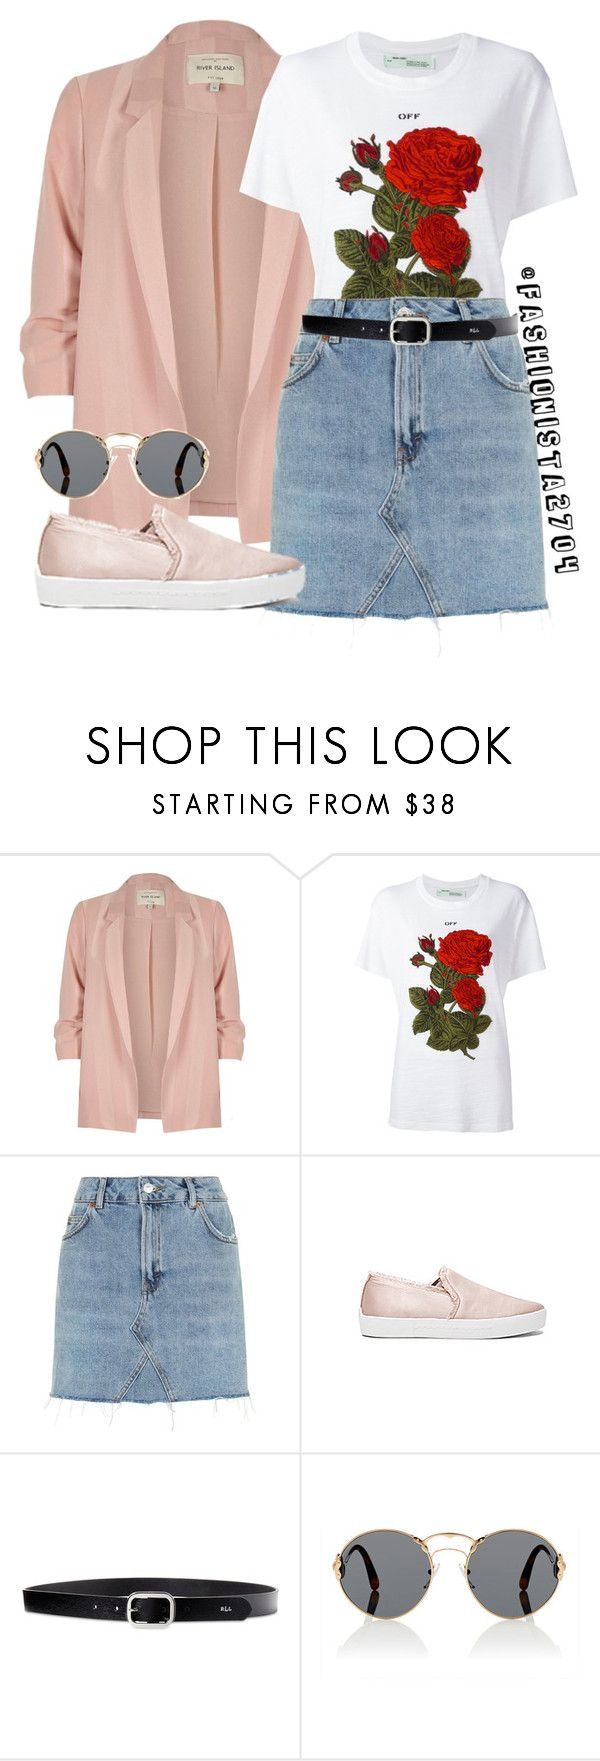 """""""Untitled #887"""" by fashionista2704 on Polyvore featuring River Island, Off-White, Topshop, Joie, Lauren Ralph Lauren and Prada"""